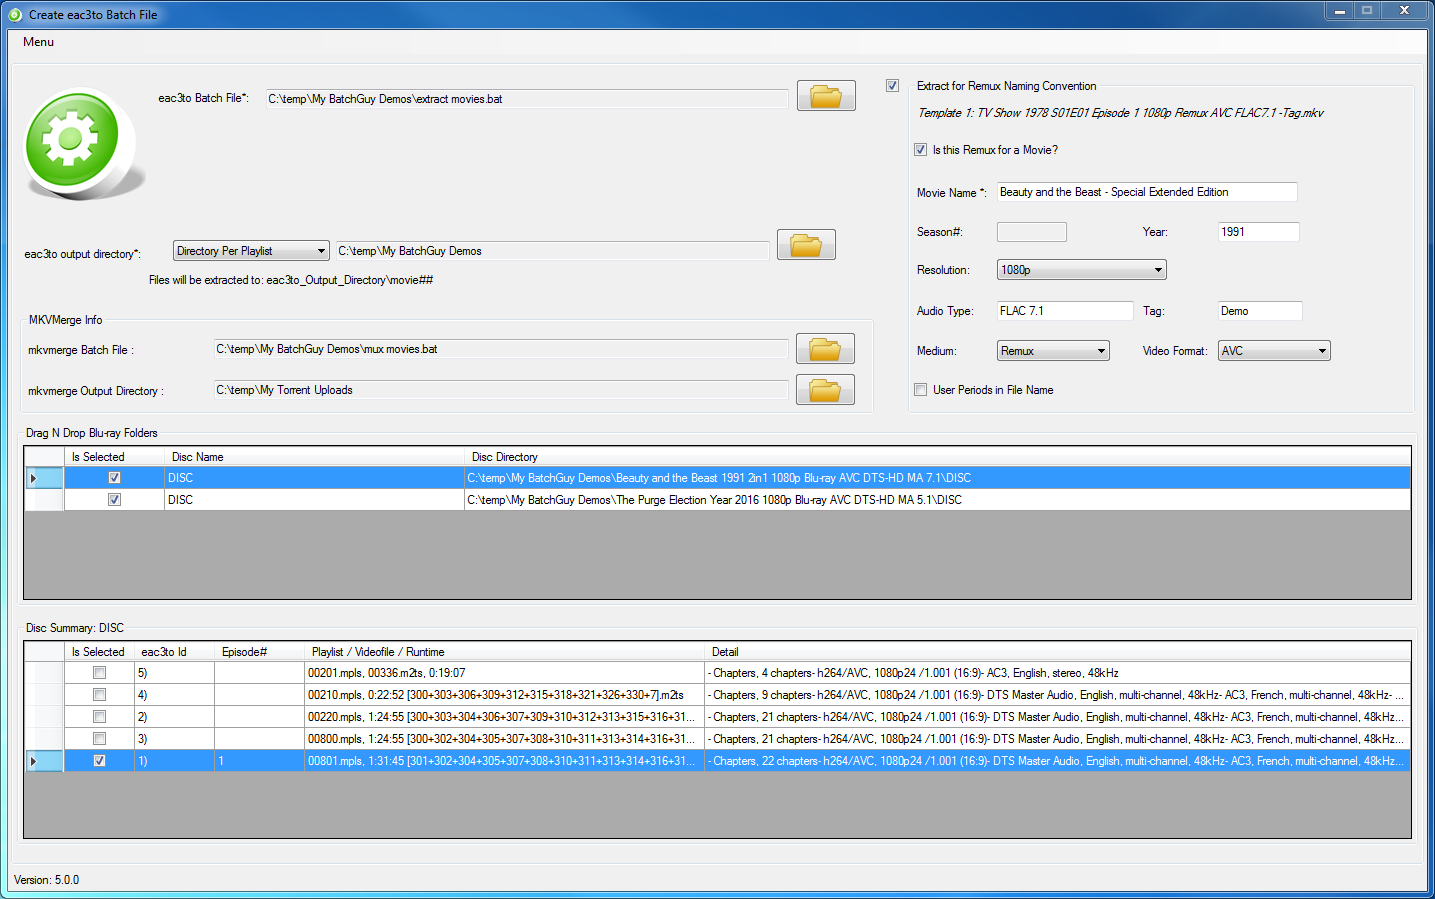 Create eac3to Batch File Screen - Movie 1